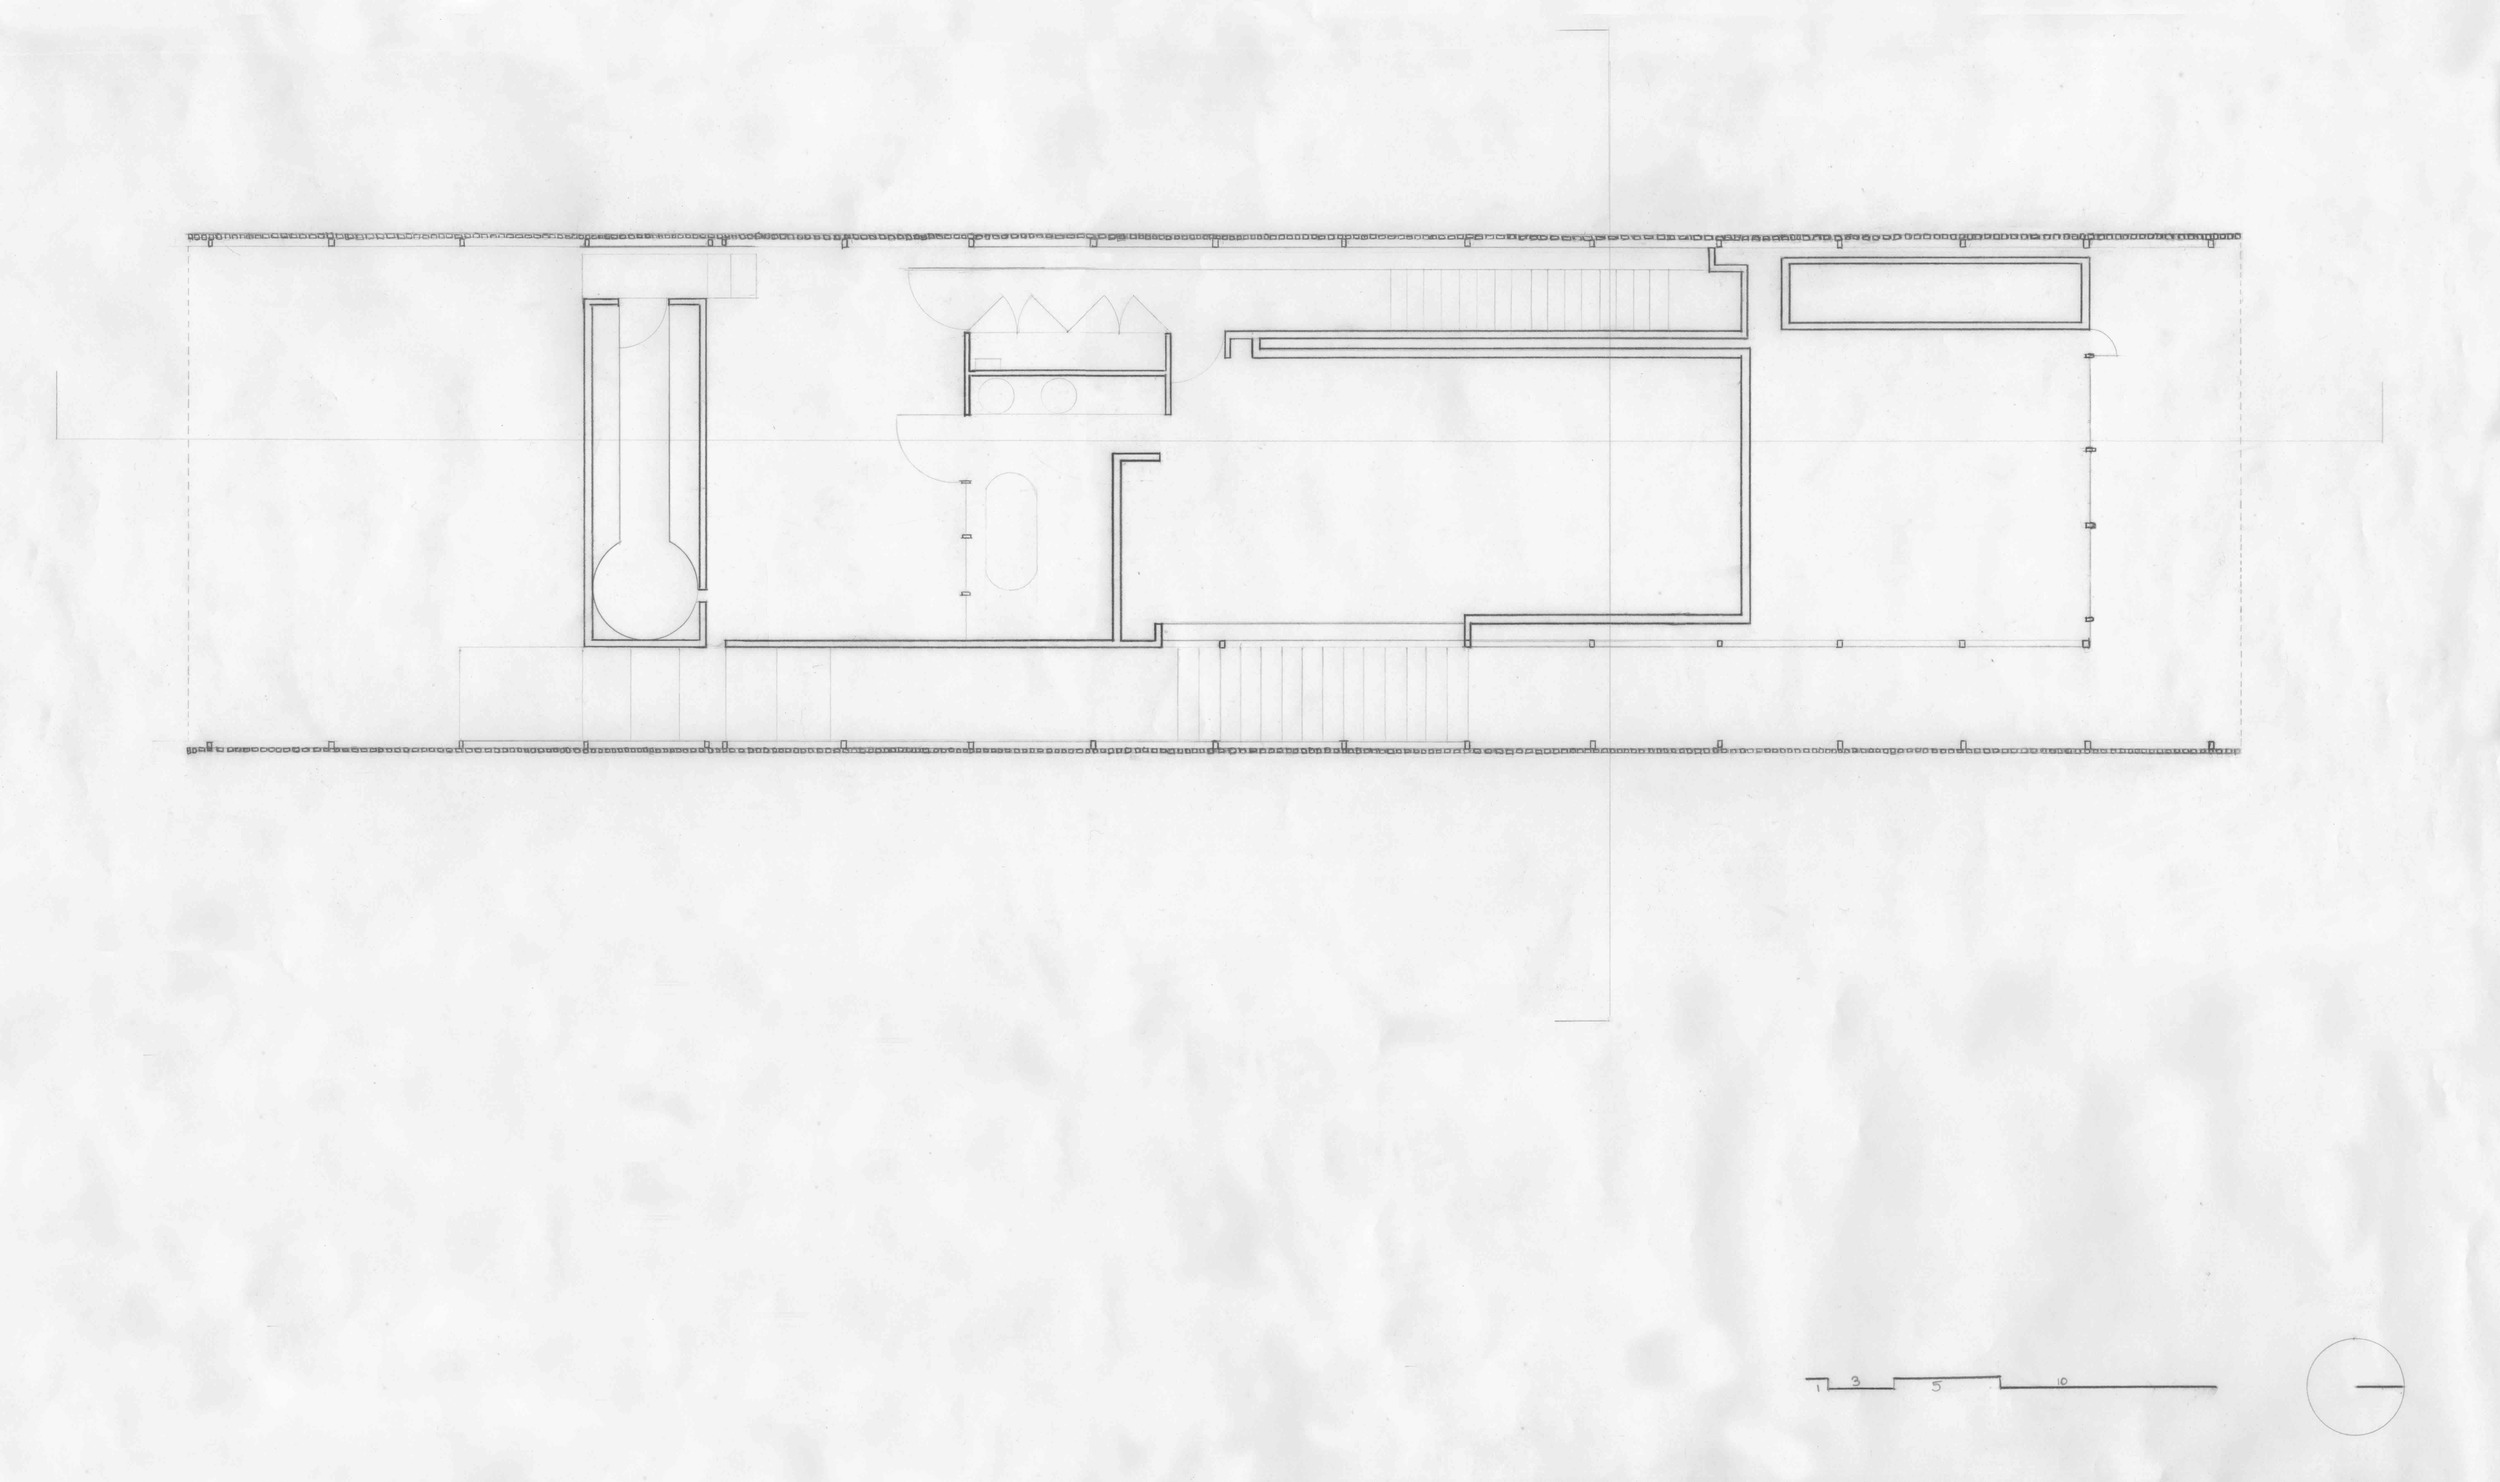 Drafted Second Floor Plan 1 copy.jpg